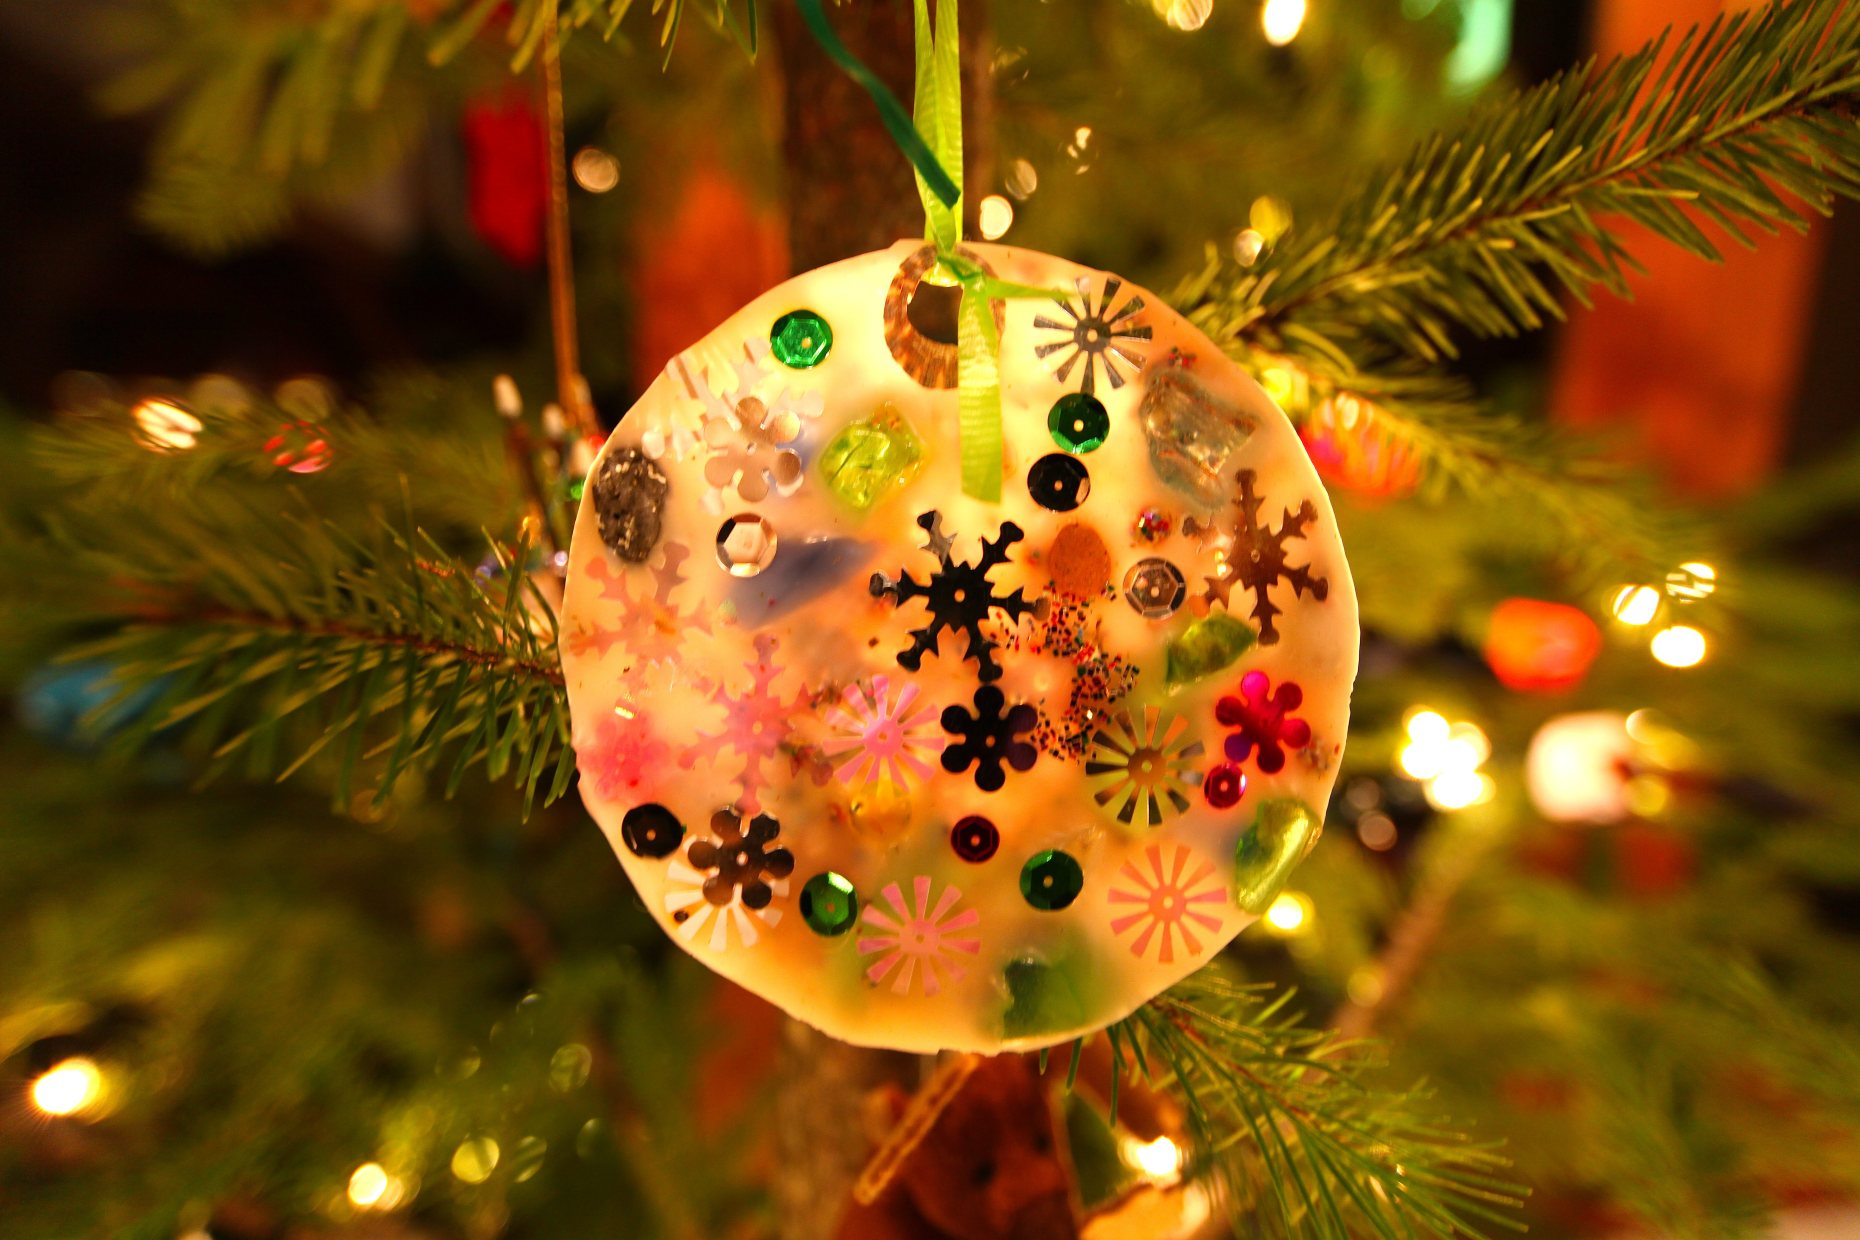 Easy Peasy Pretty Ornament From a Plastic Lid Mold